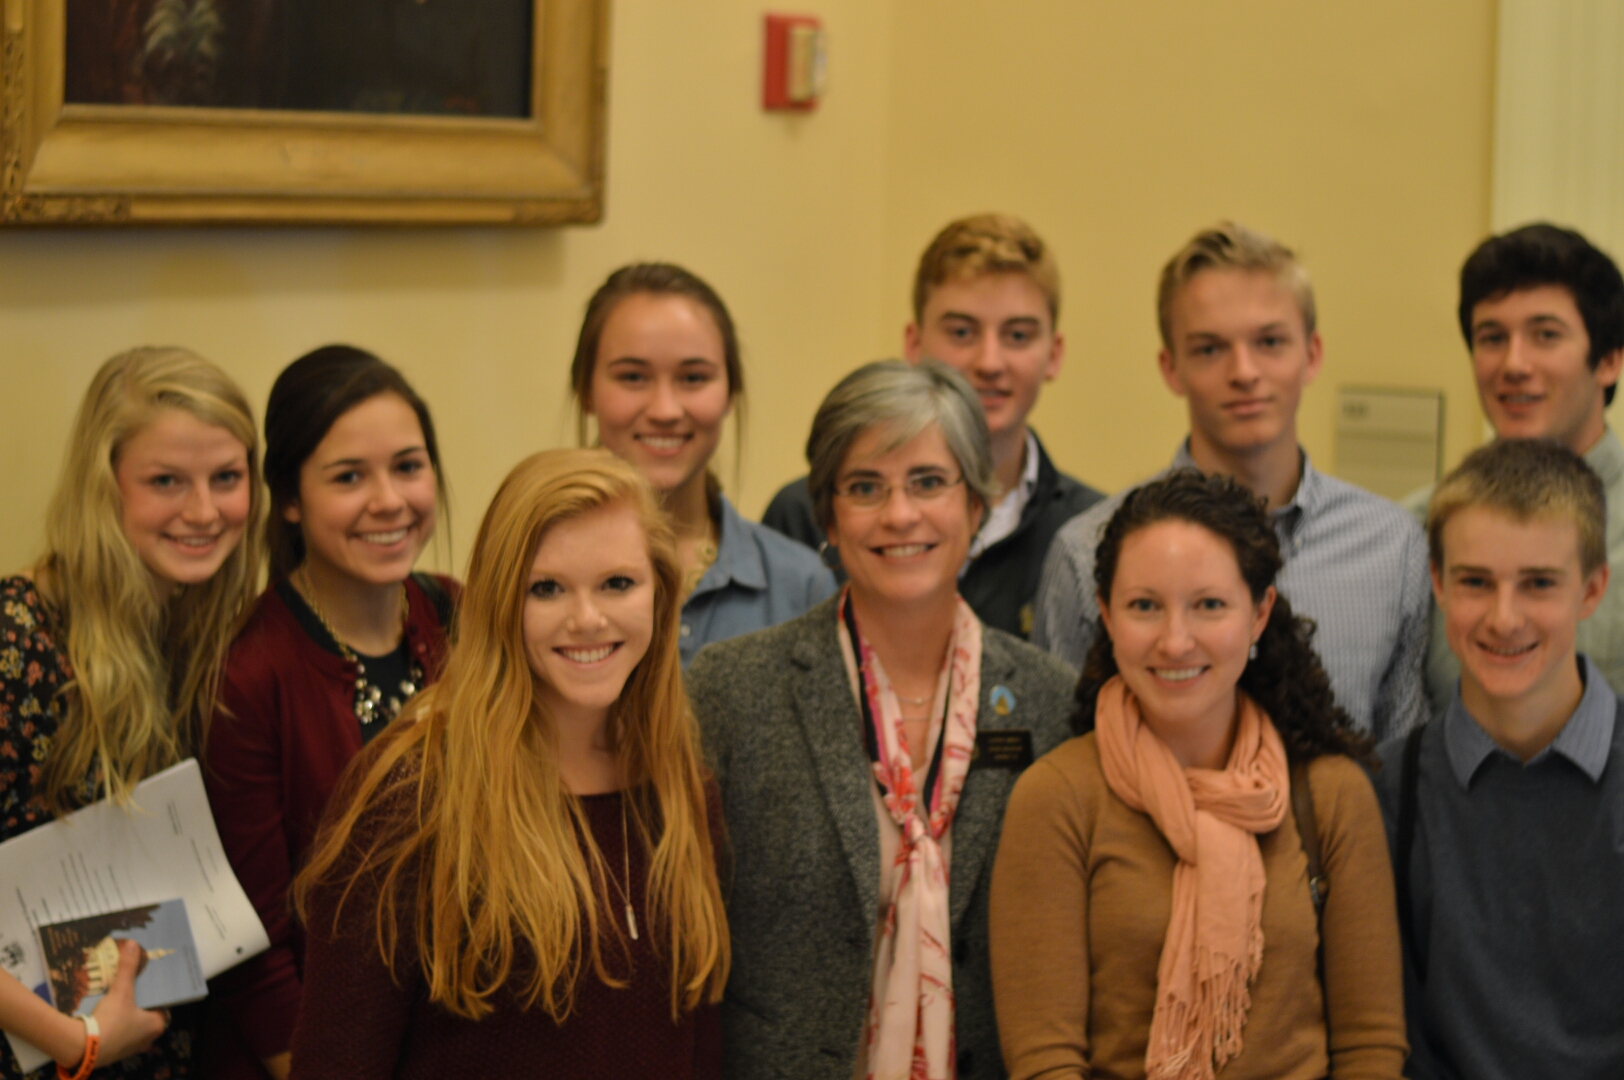 Senator Breen with members of the Falmouth High School Civics Club